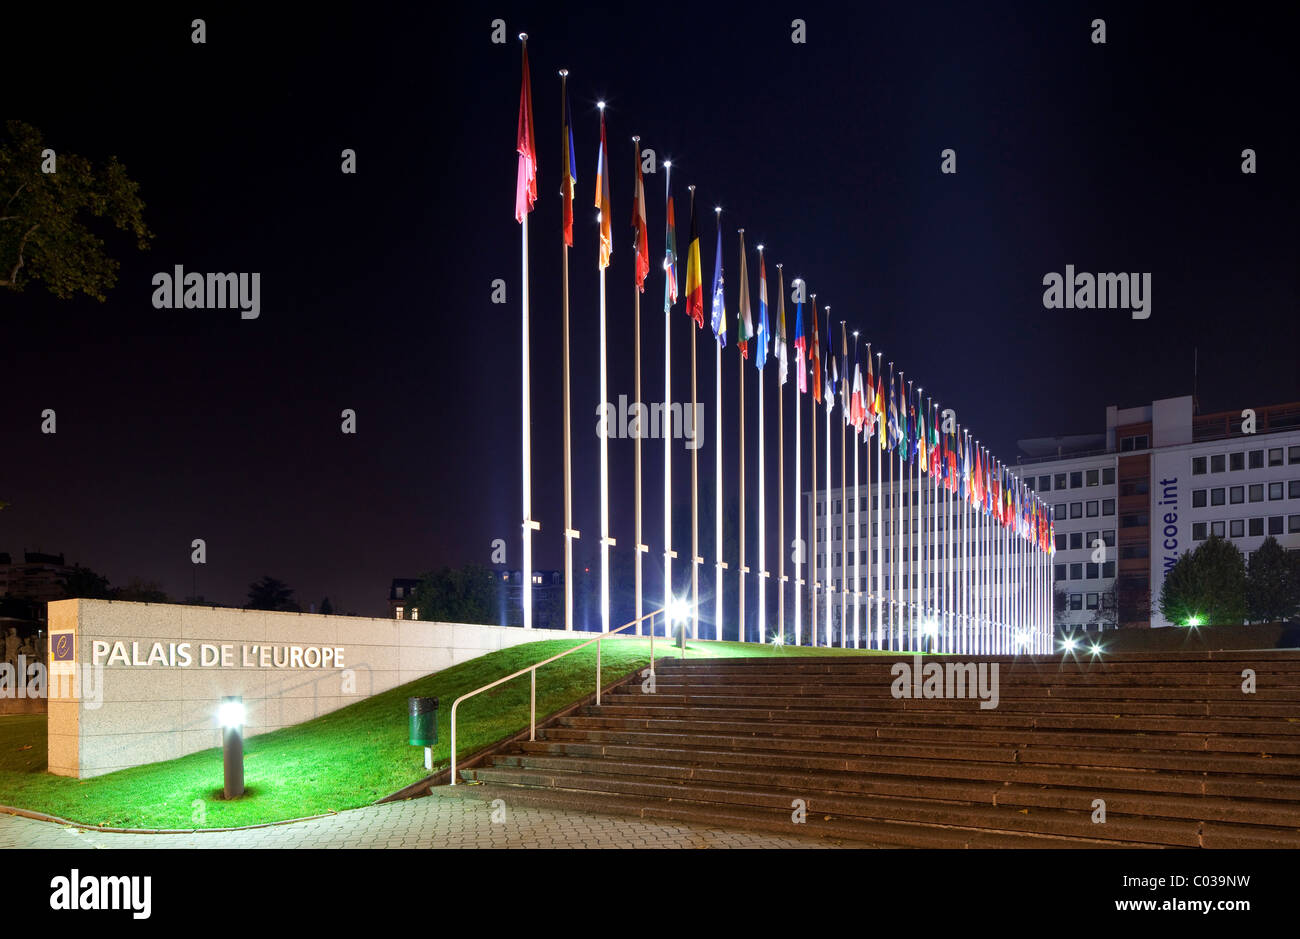 European flags in front of the main building of the Council of Europe, Strasbourg, Alsace, France, Europe - Stock Image